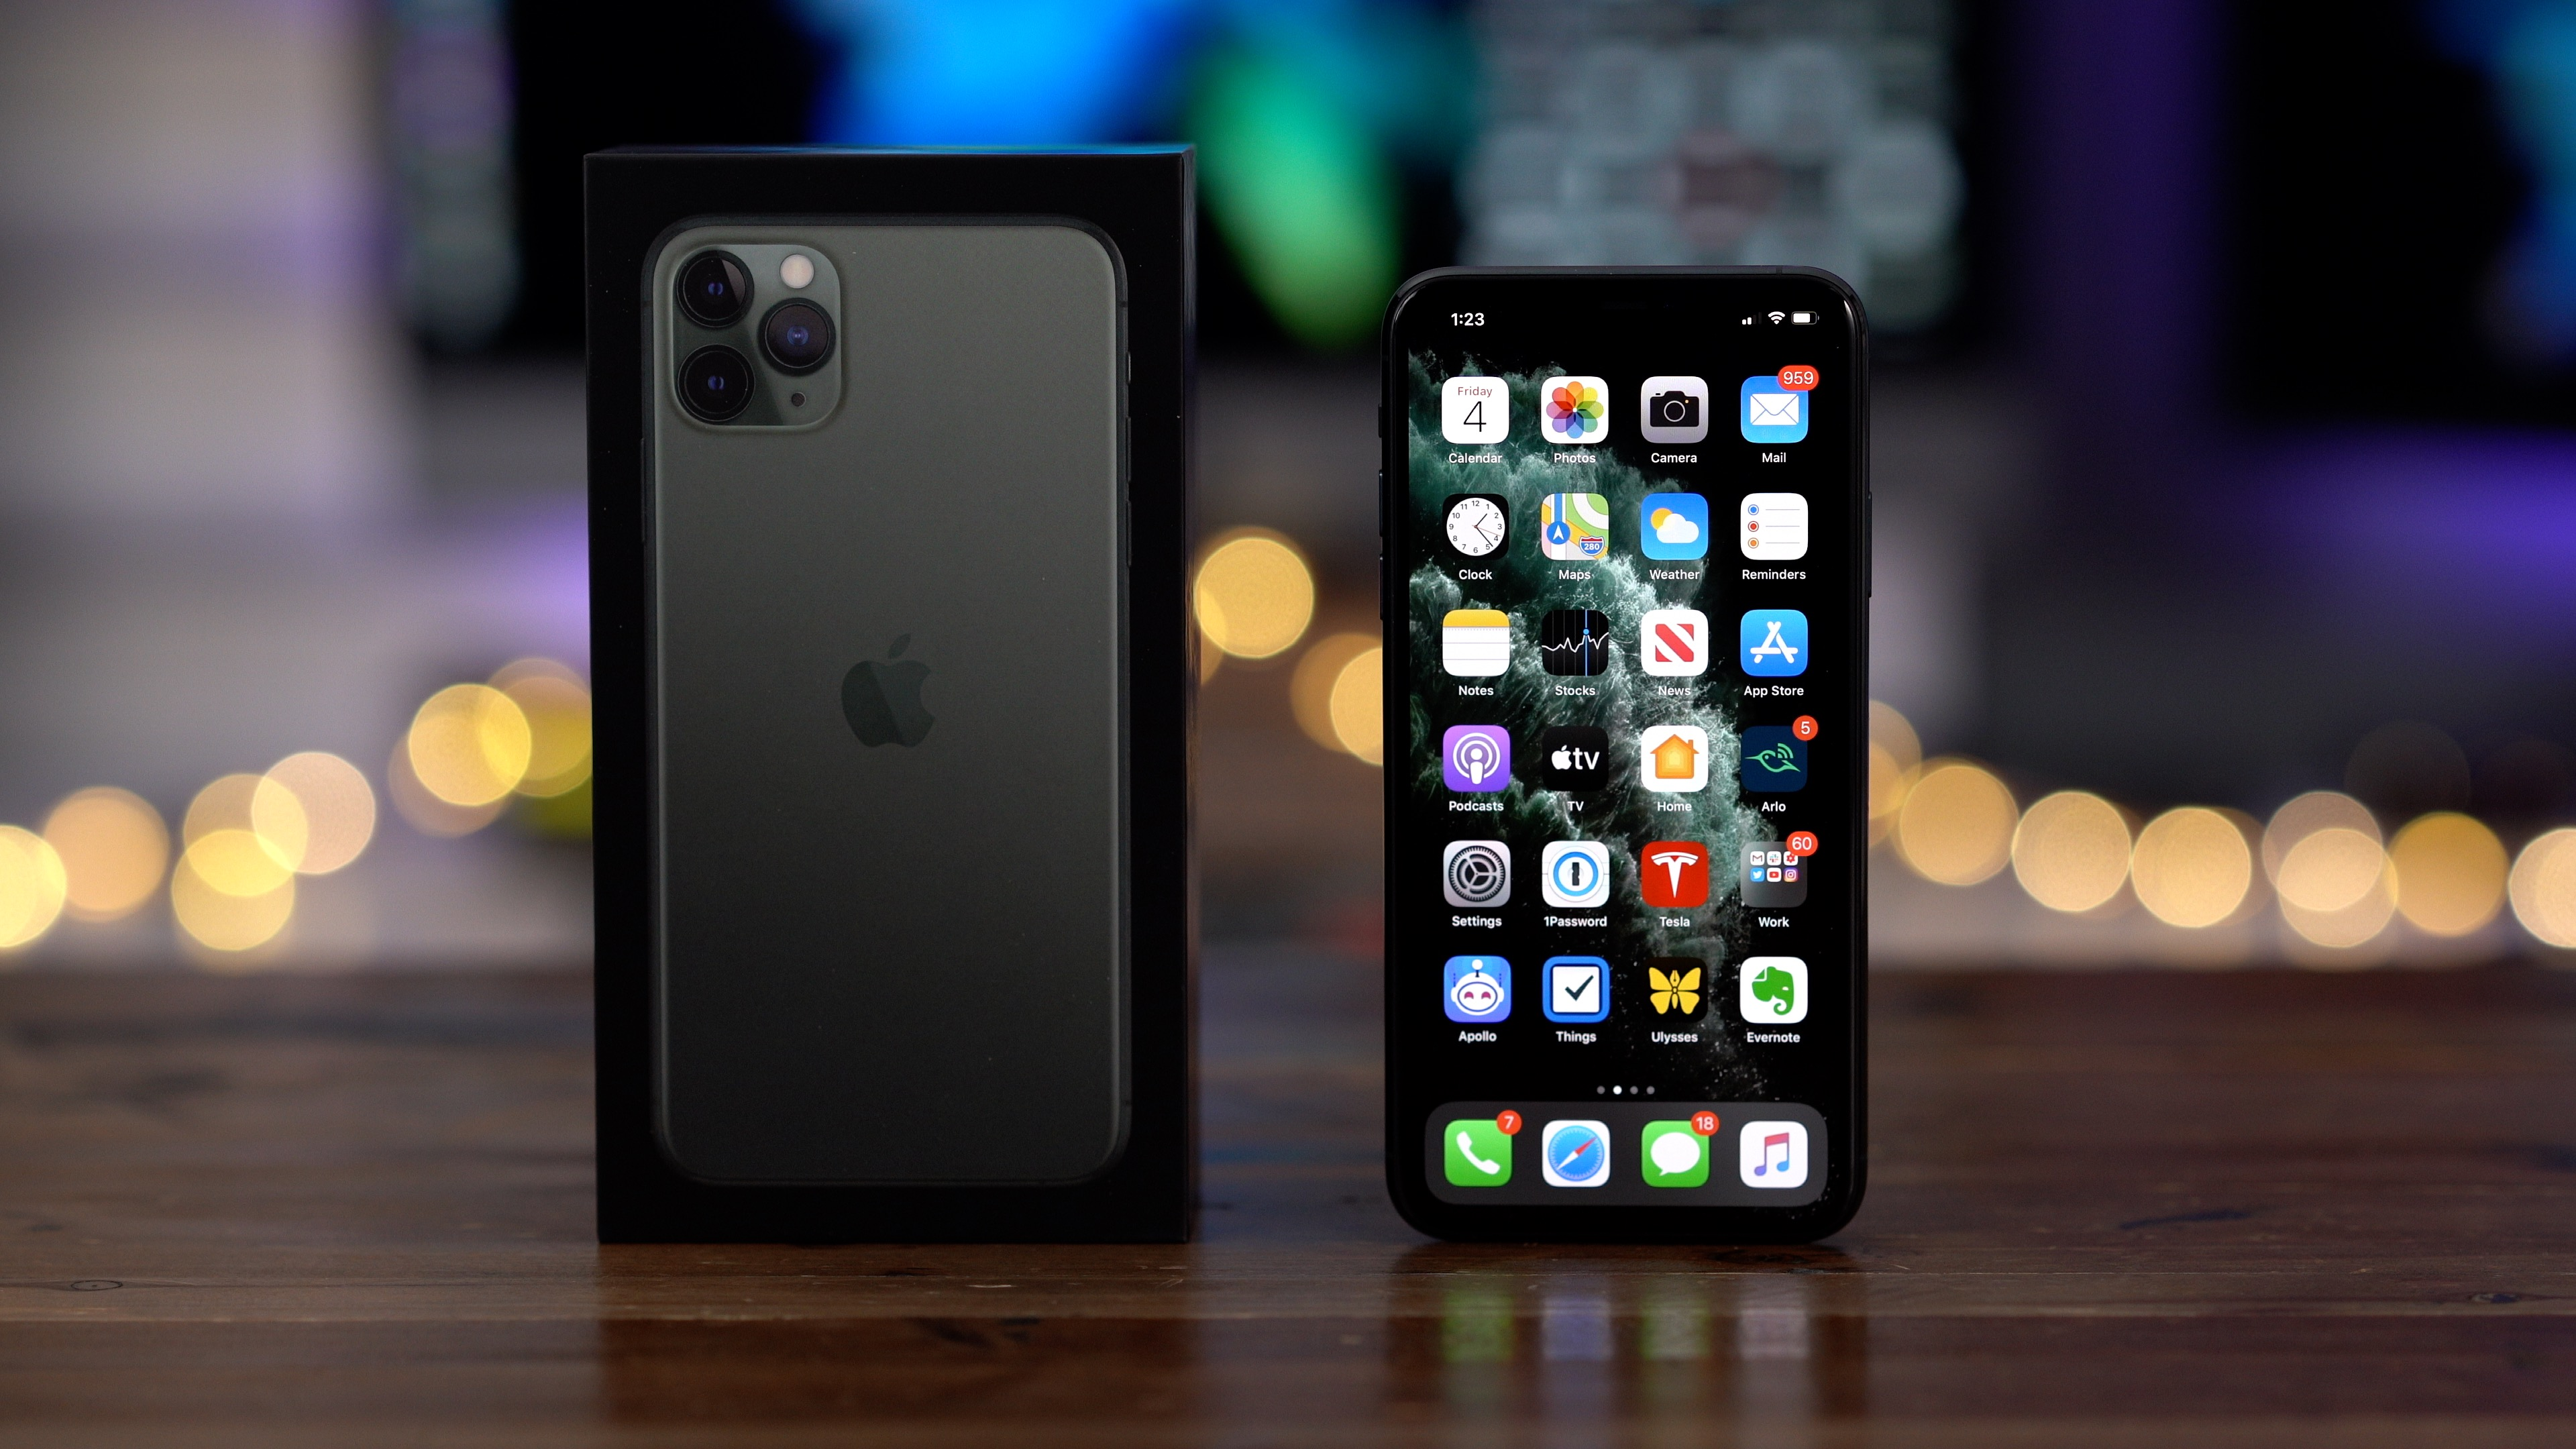 9to5rewards Enter To Win Iphone 11 Pro Max From Totallee Giveaway 9to5mac